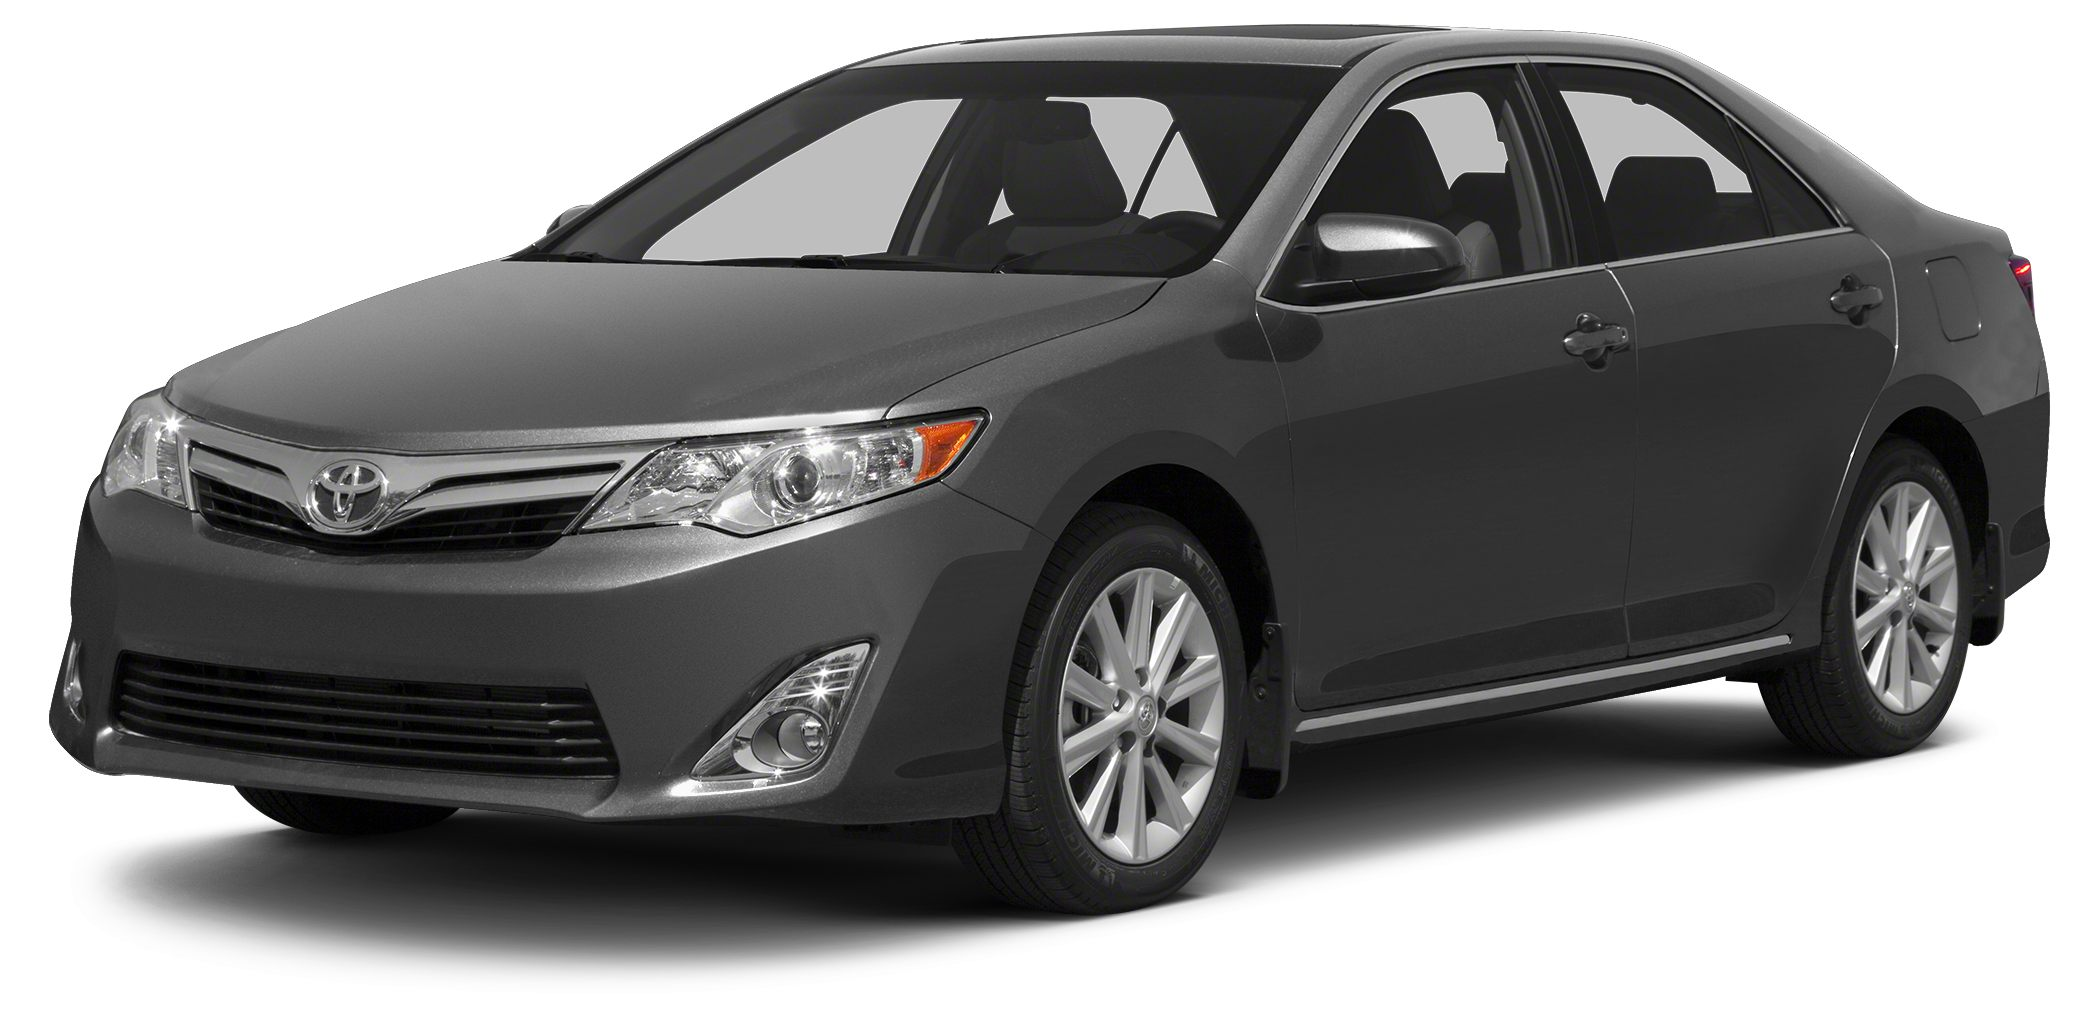 2013 Toyota Camry LE MAGNETIC GRAY METALLIC exterior and ASH interior LE trim PRICE DROP FROM 1